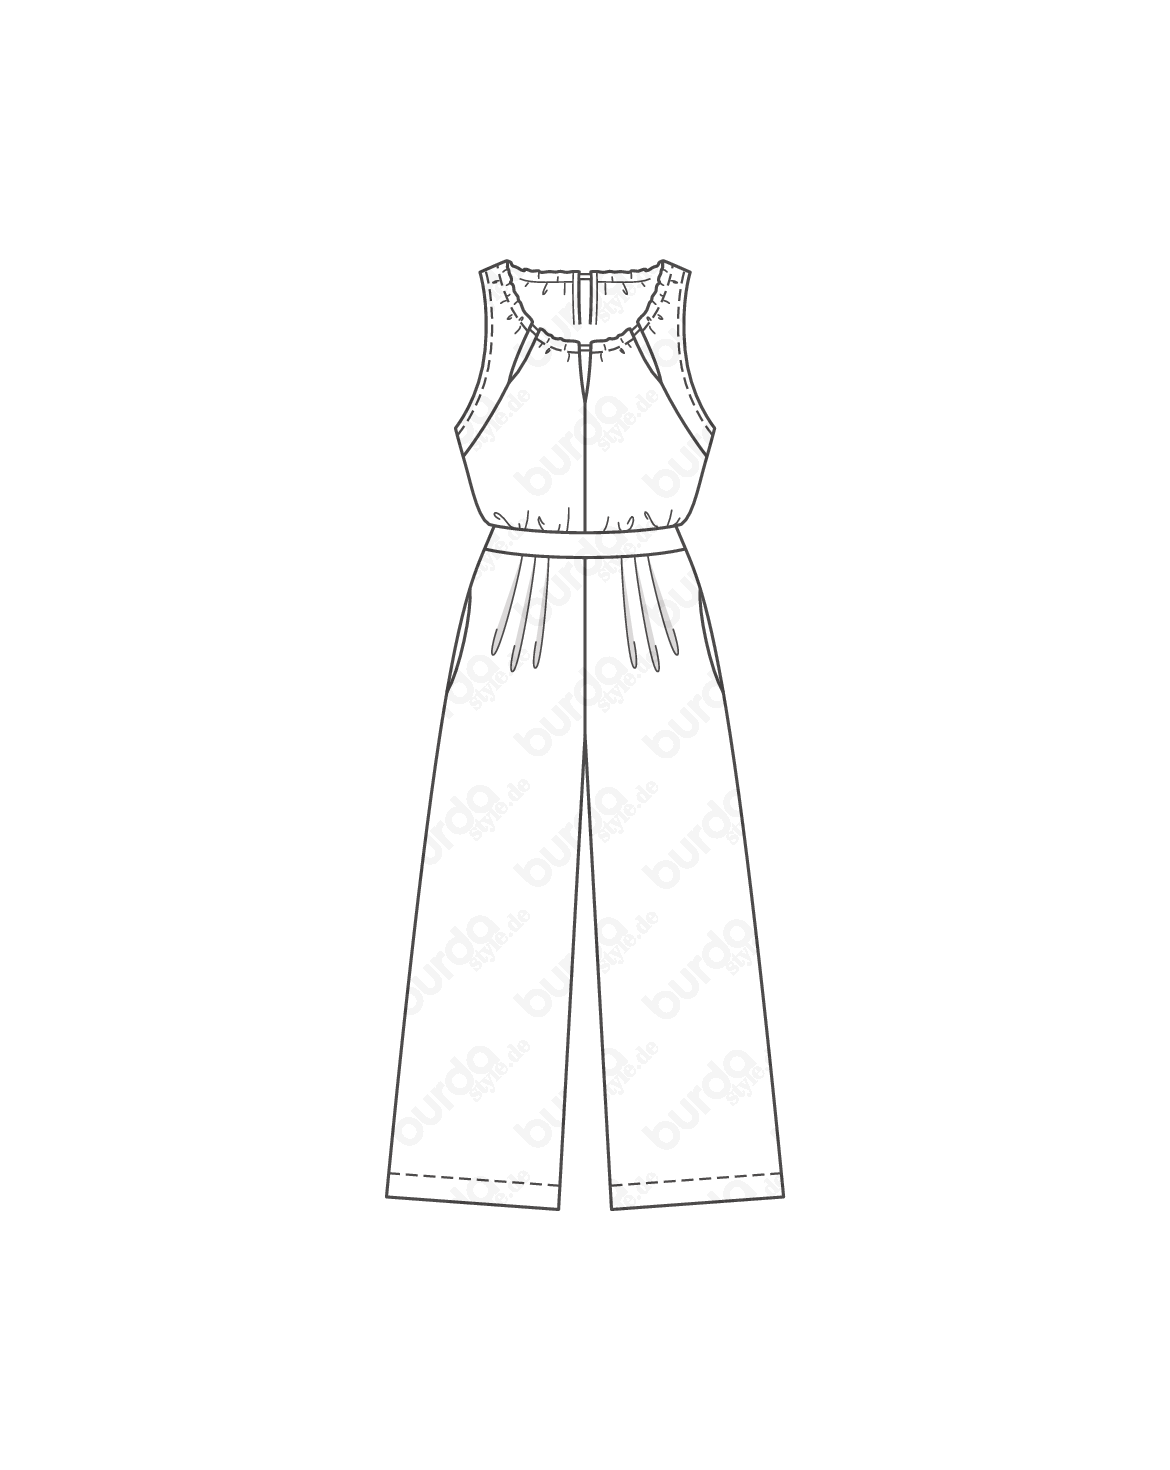 Schnittmuster Overall 04/2016 #112A